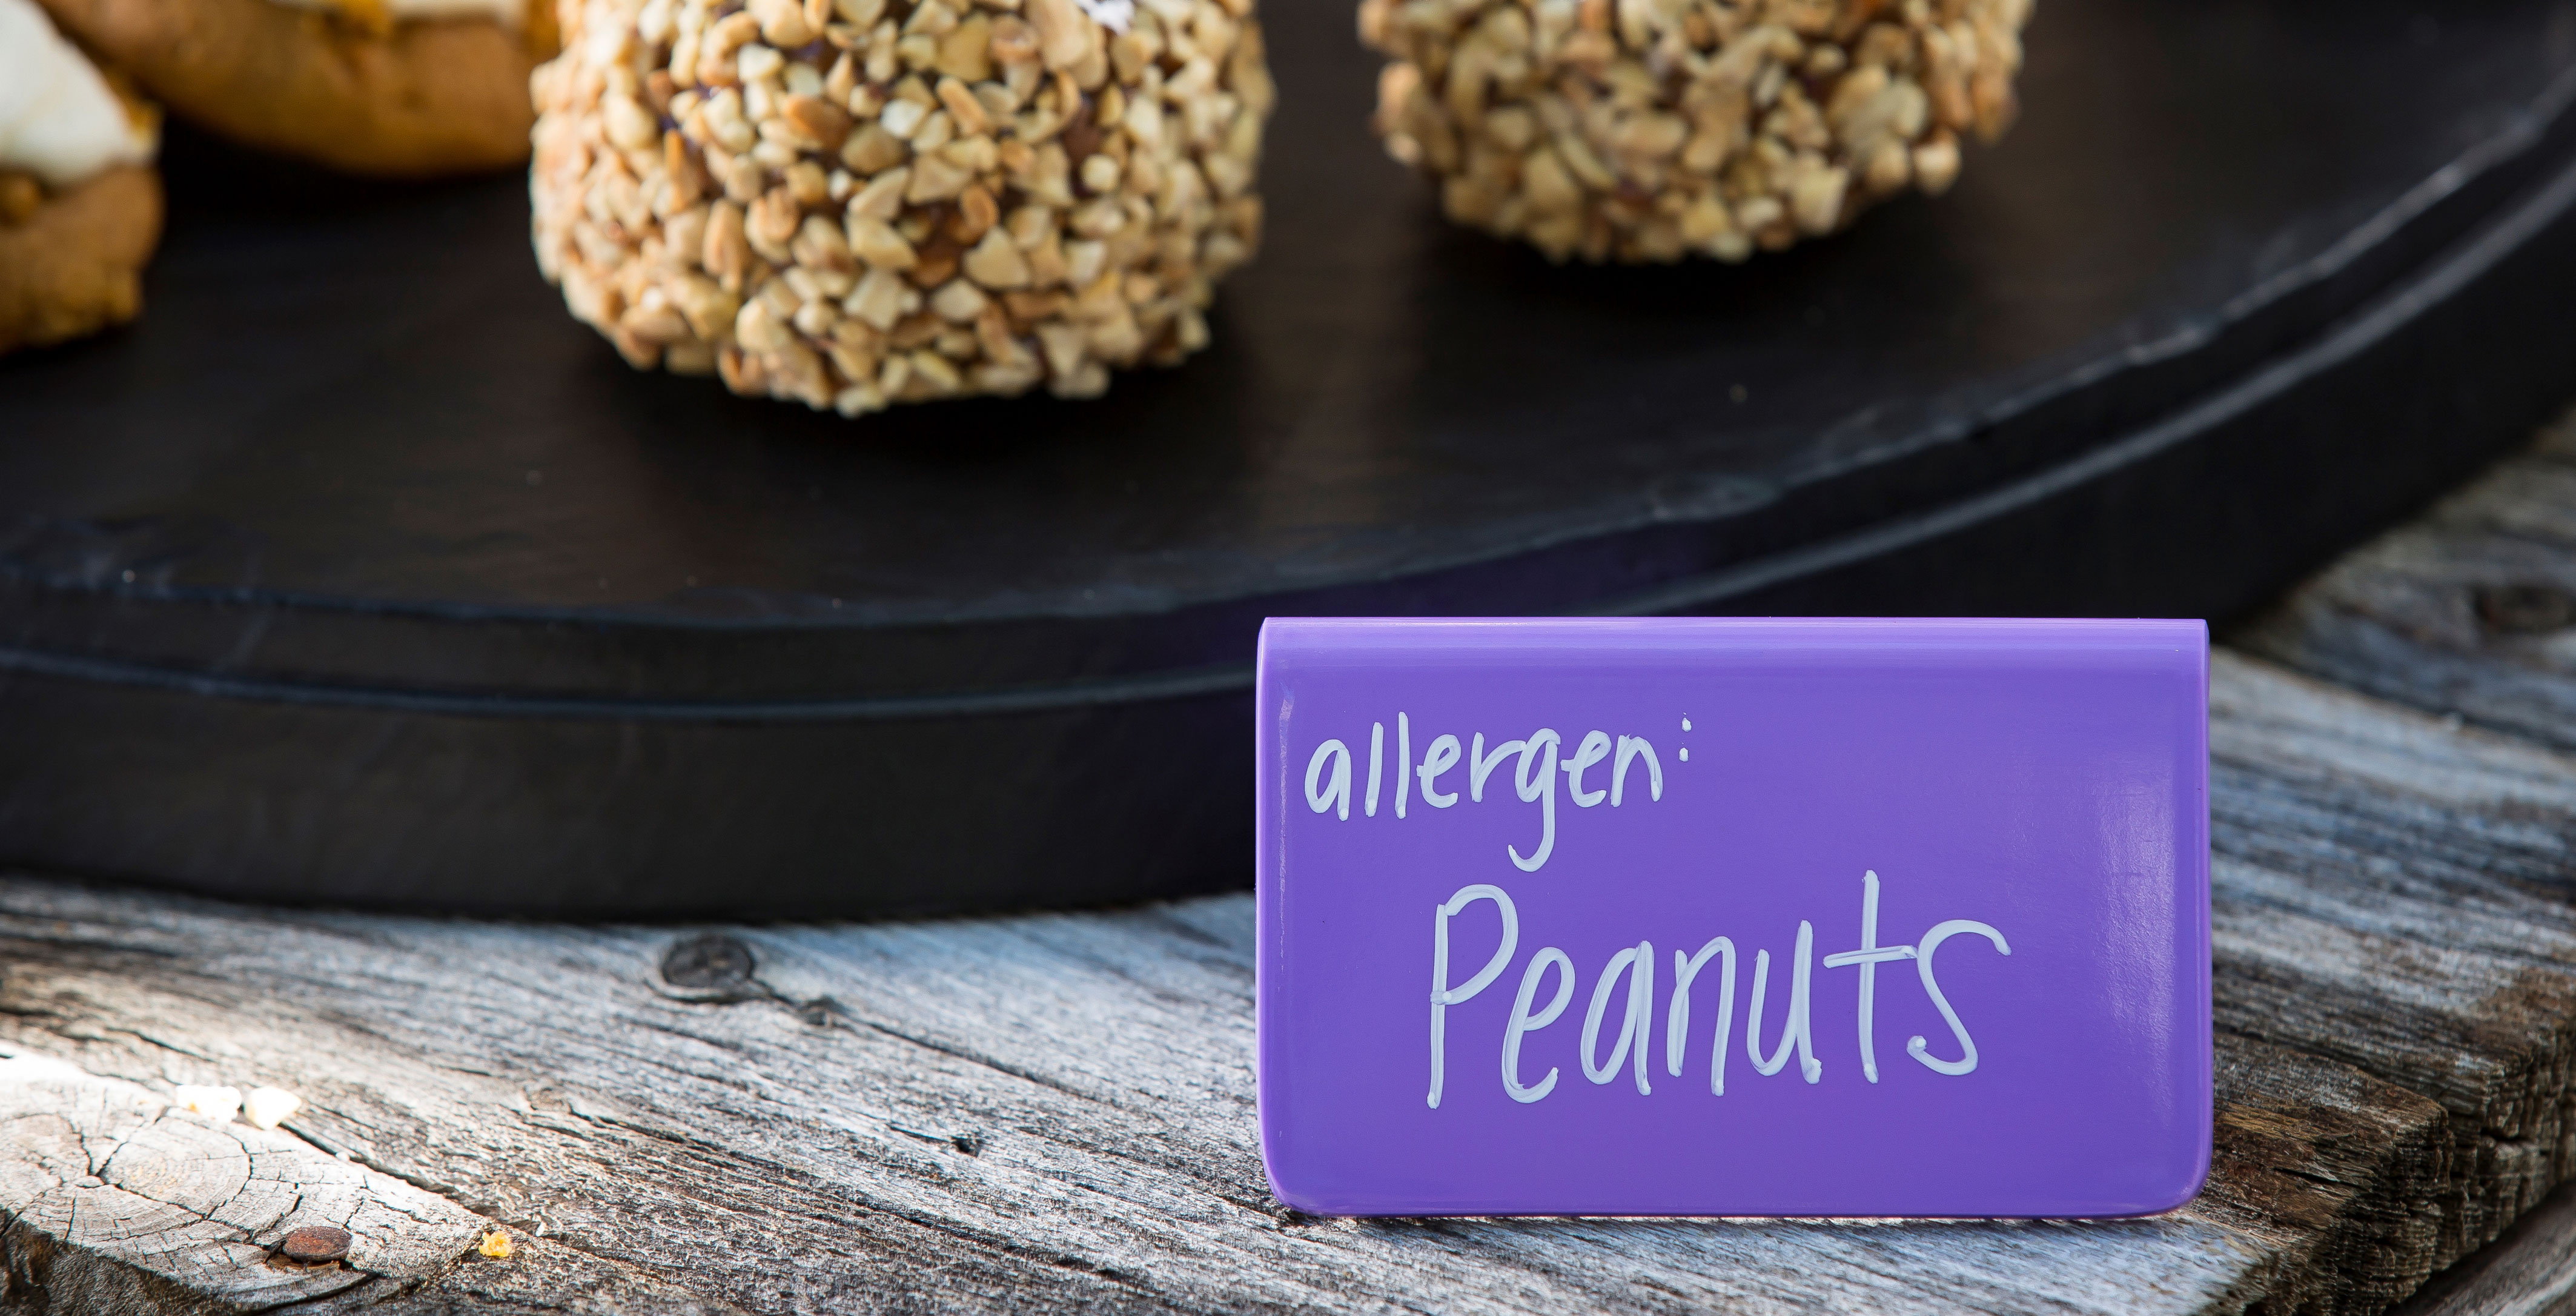 The UK Goes Purple for Allergens